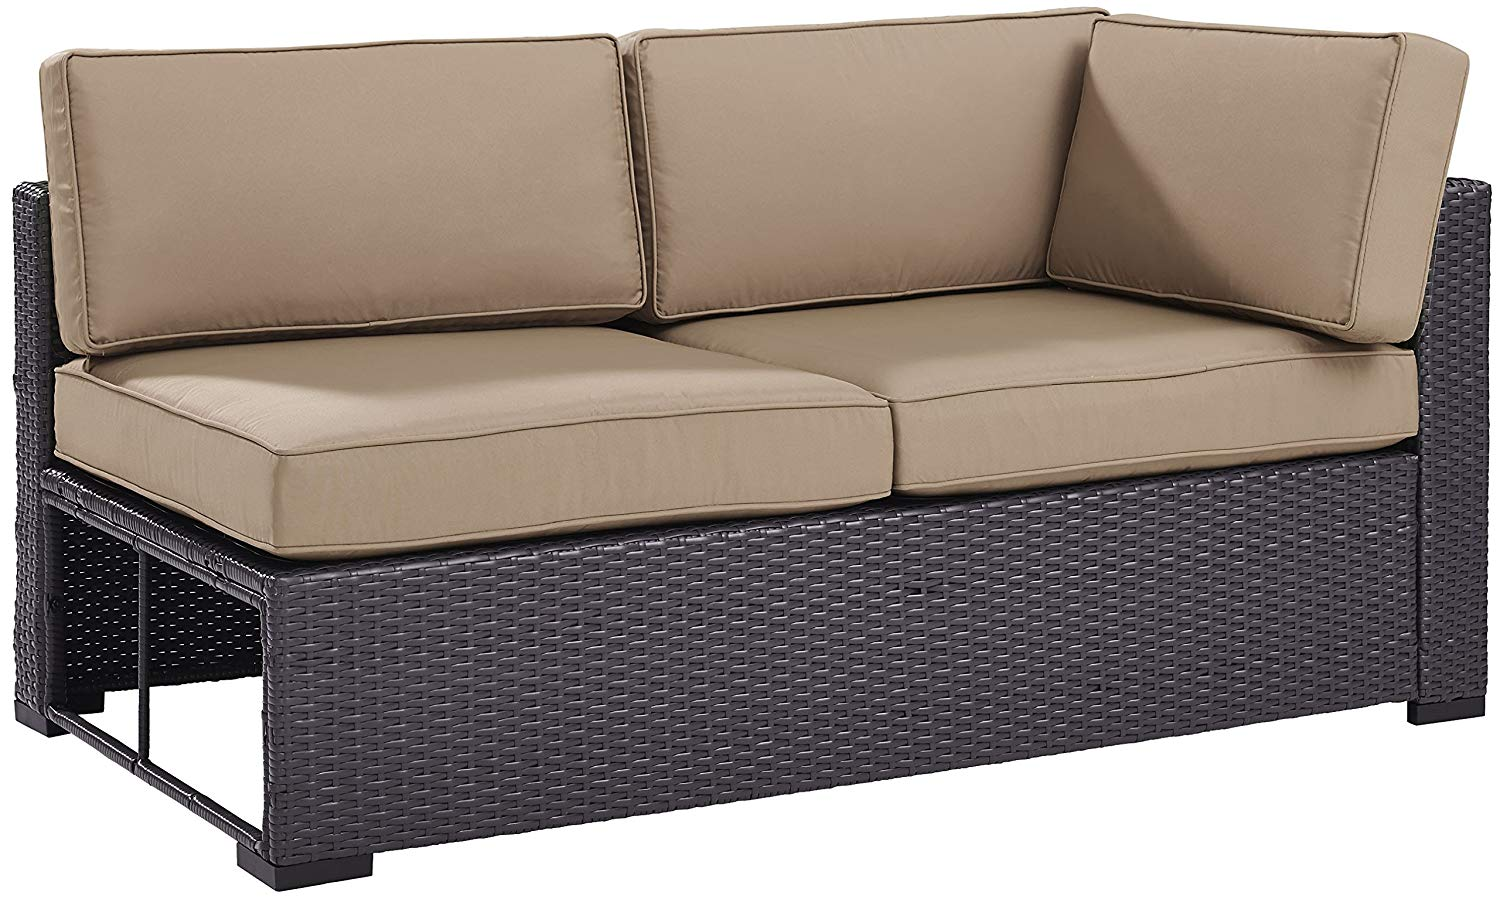 Crosley Furniture KO70129BR-MO Biscayne Outdoor Wicker Single-Arm Loveseat, Brown with Mocha Cushions